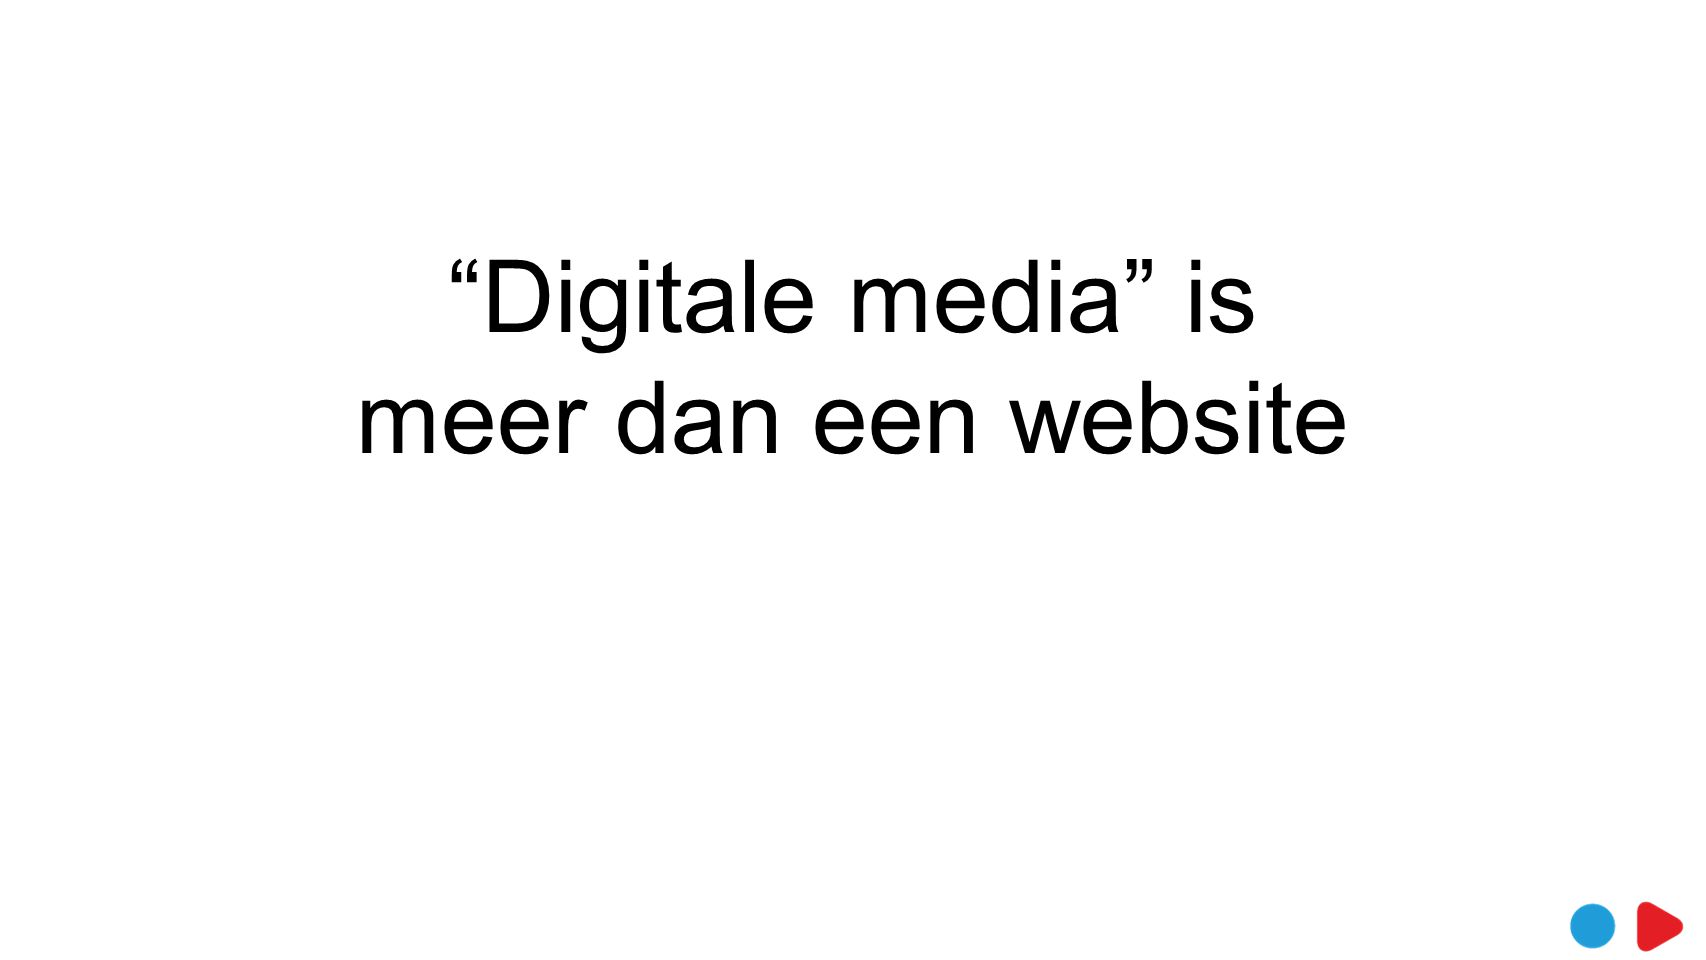 Digitale media is meer dan een website